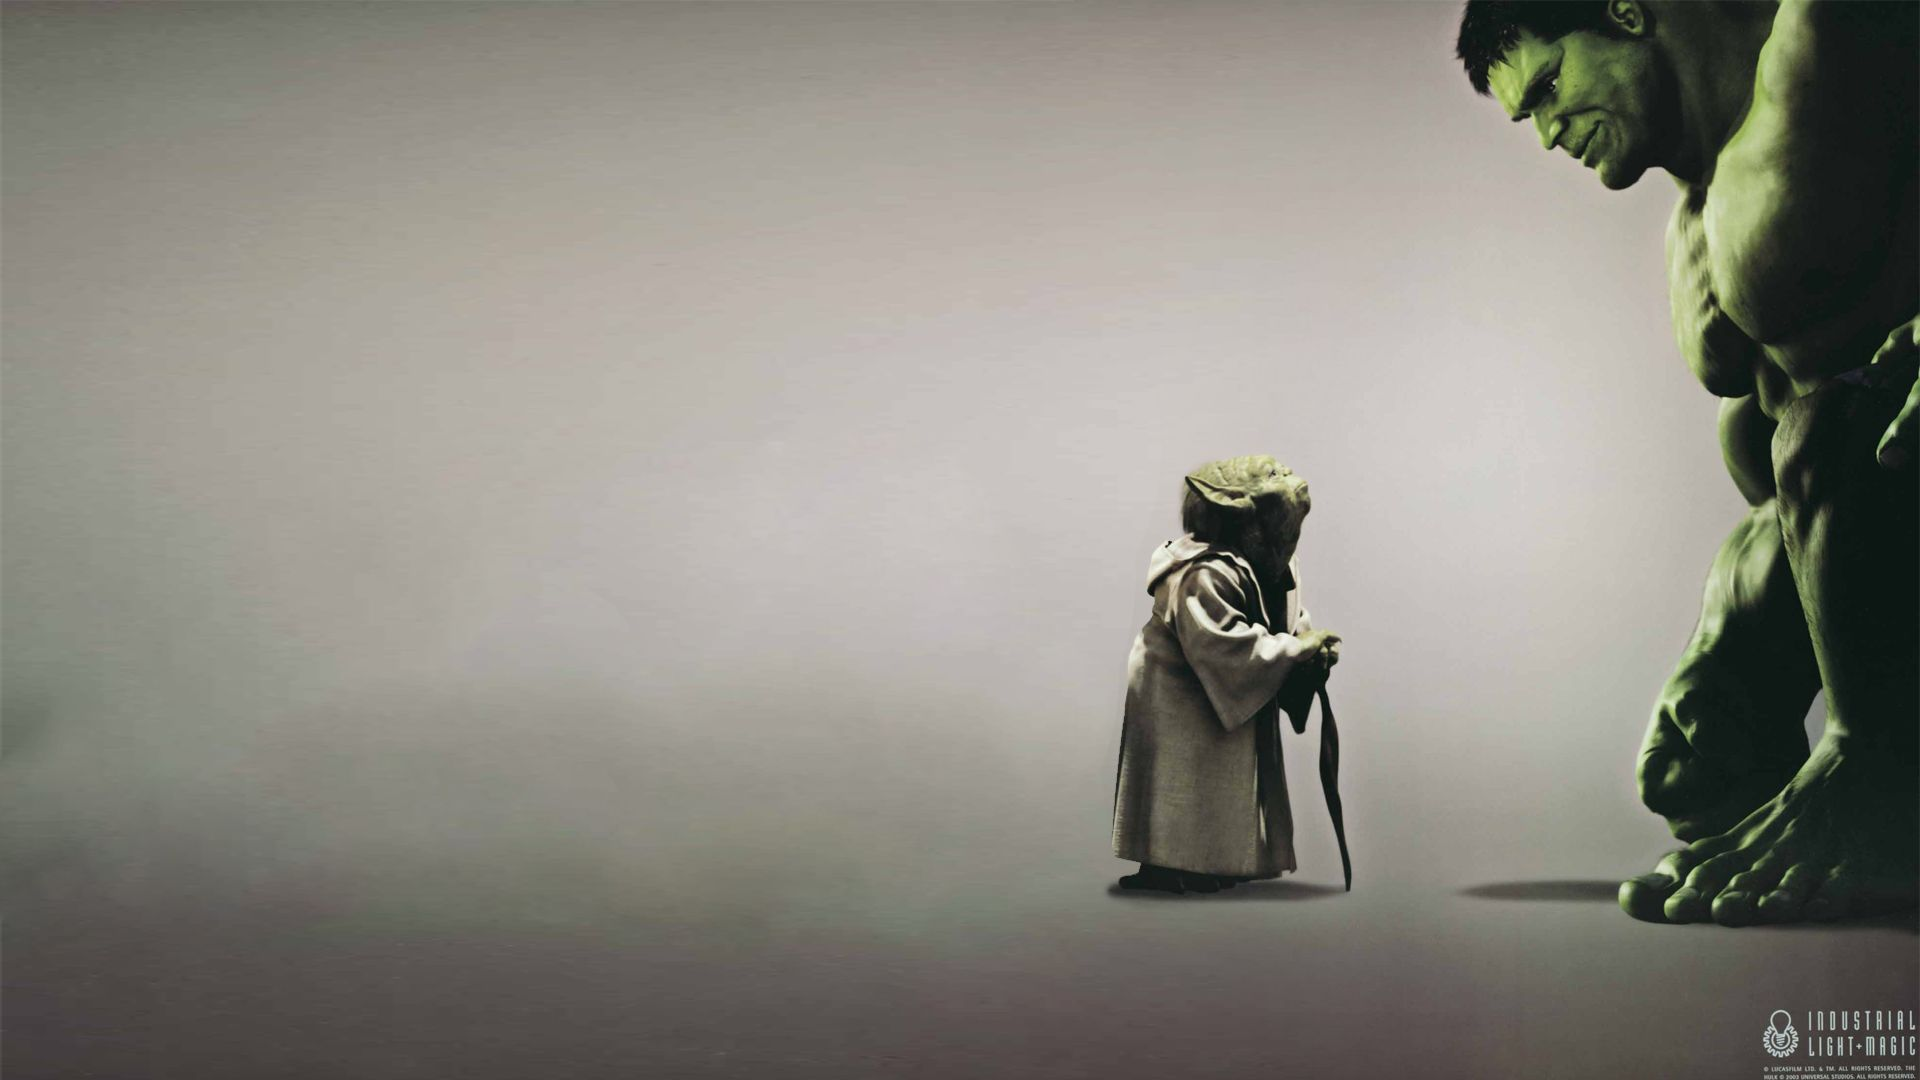 star wars yoda wallpapers hd desktop and mobile backgrounds | hd